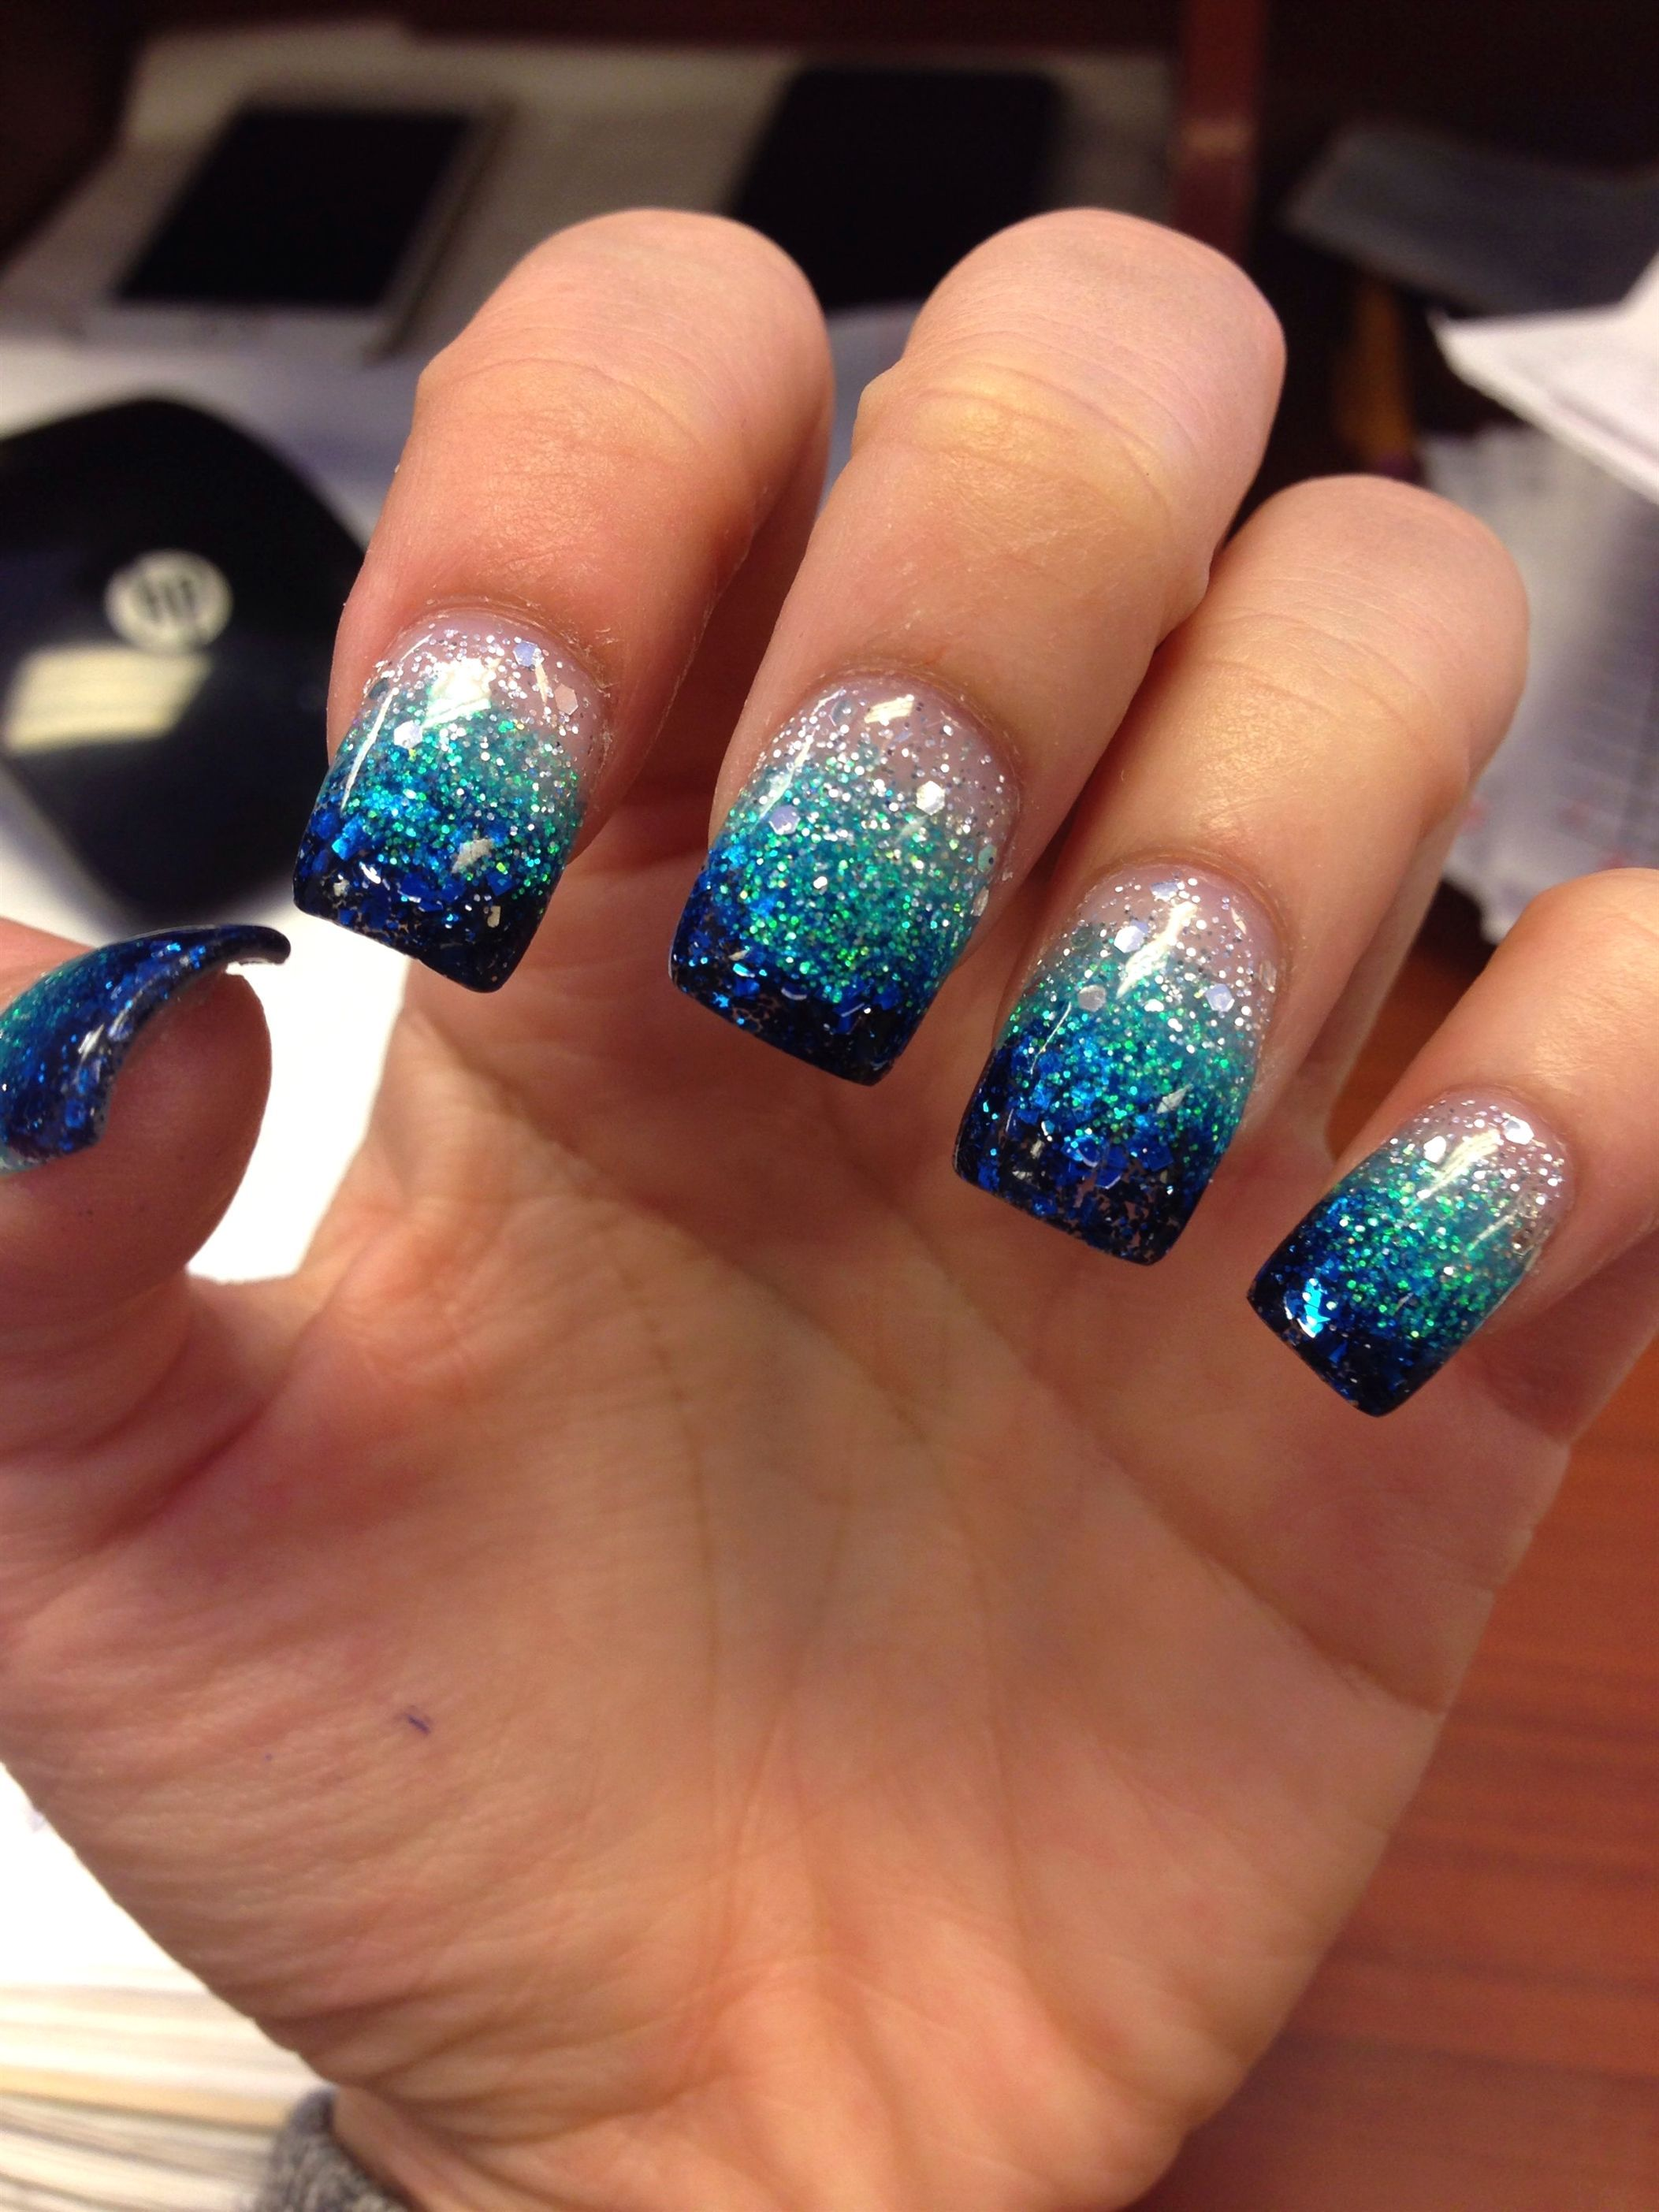 Blue teal glitter faded nails #AcrylicNailDesigns - Blue ...